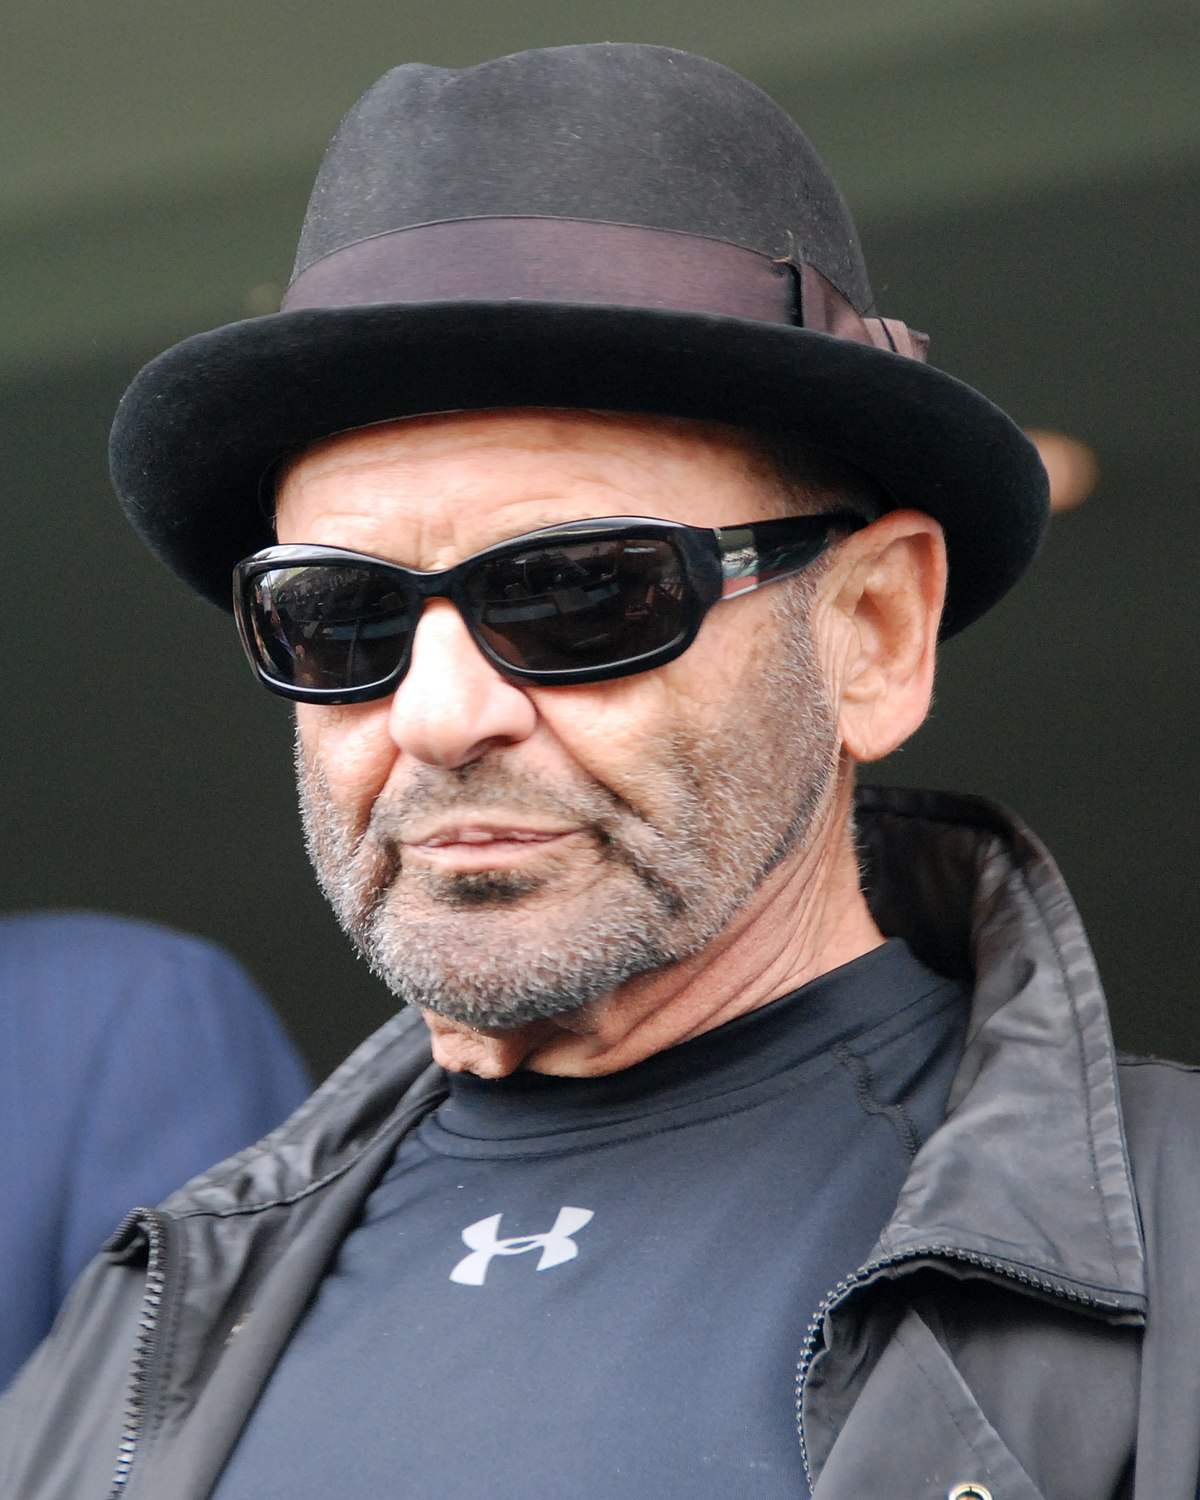 Joe Pesci Wikipedia With indeed, you can search millions of jobs online to find the next step in your career. joe pesci wikipedia